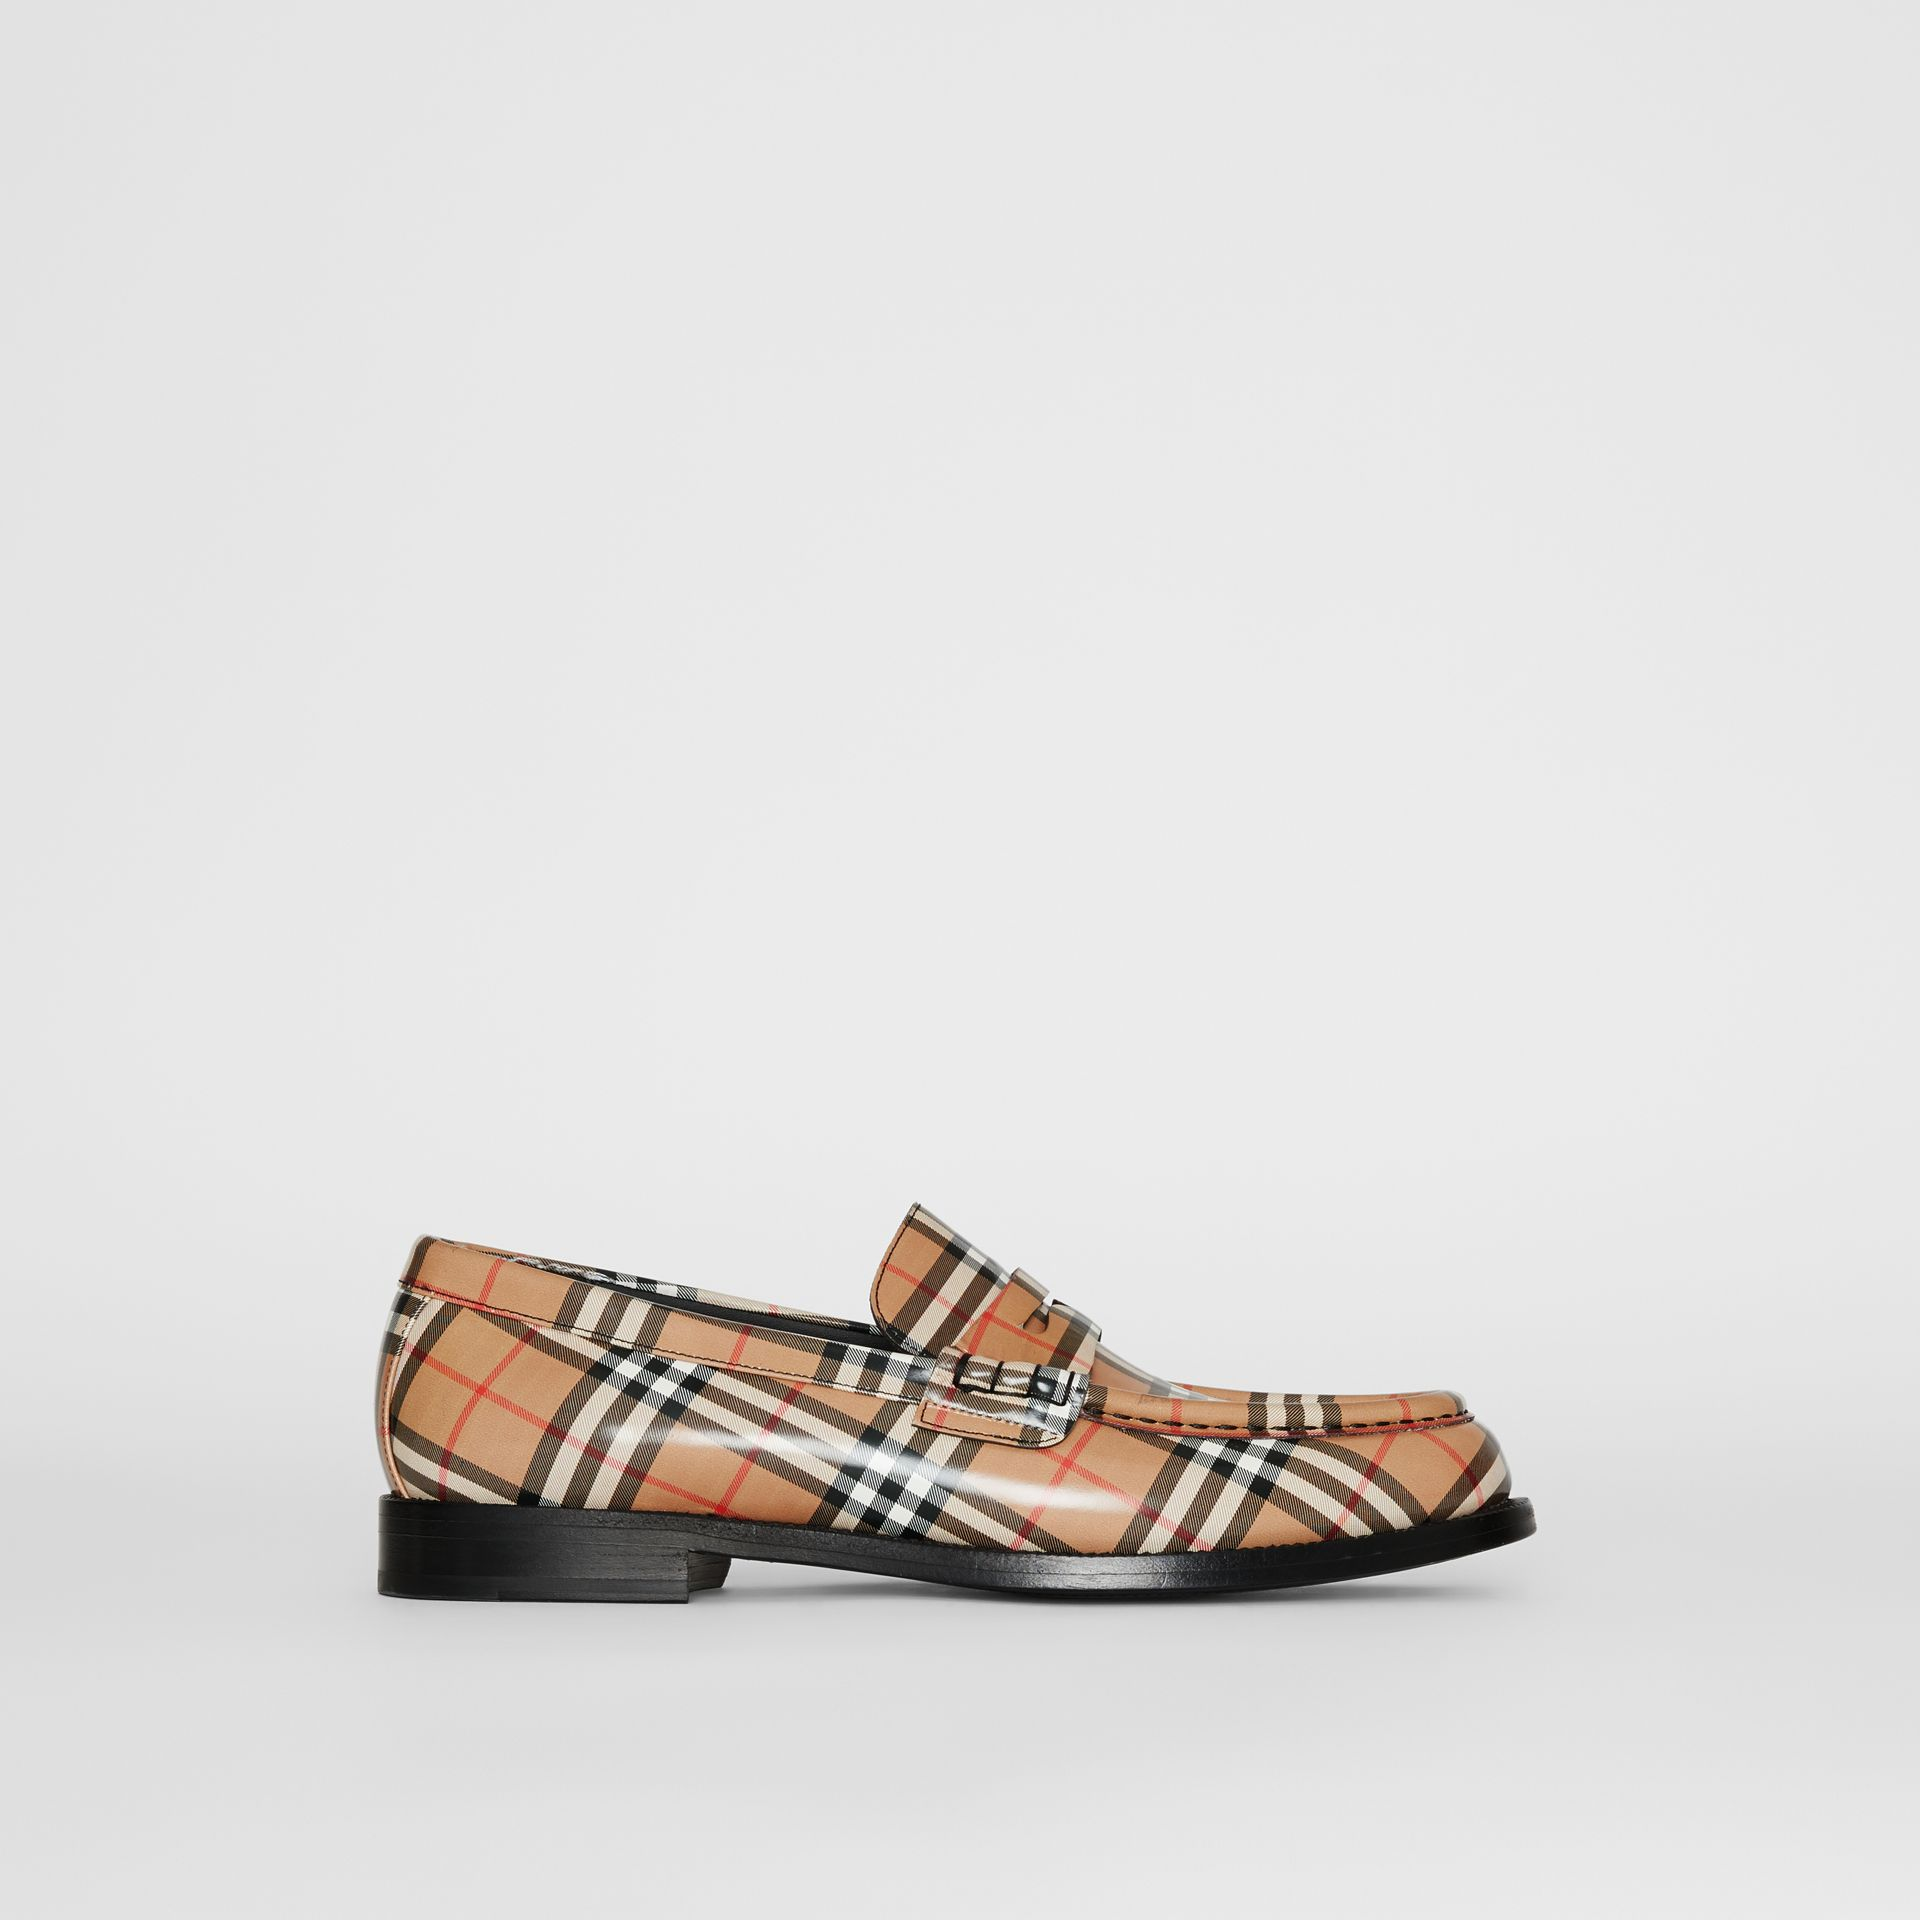 Gosha x Burberry Check Leather Loafers in Antique Yellow - Men | Burberry - gallery image 3